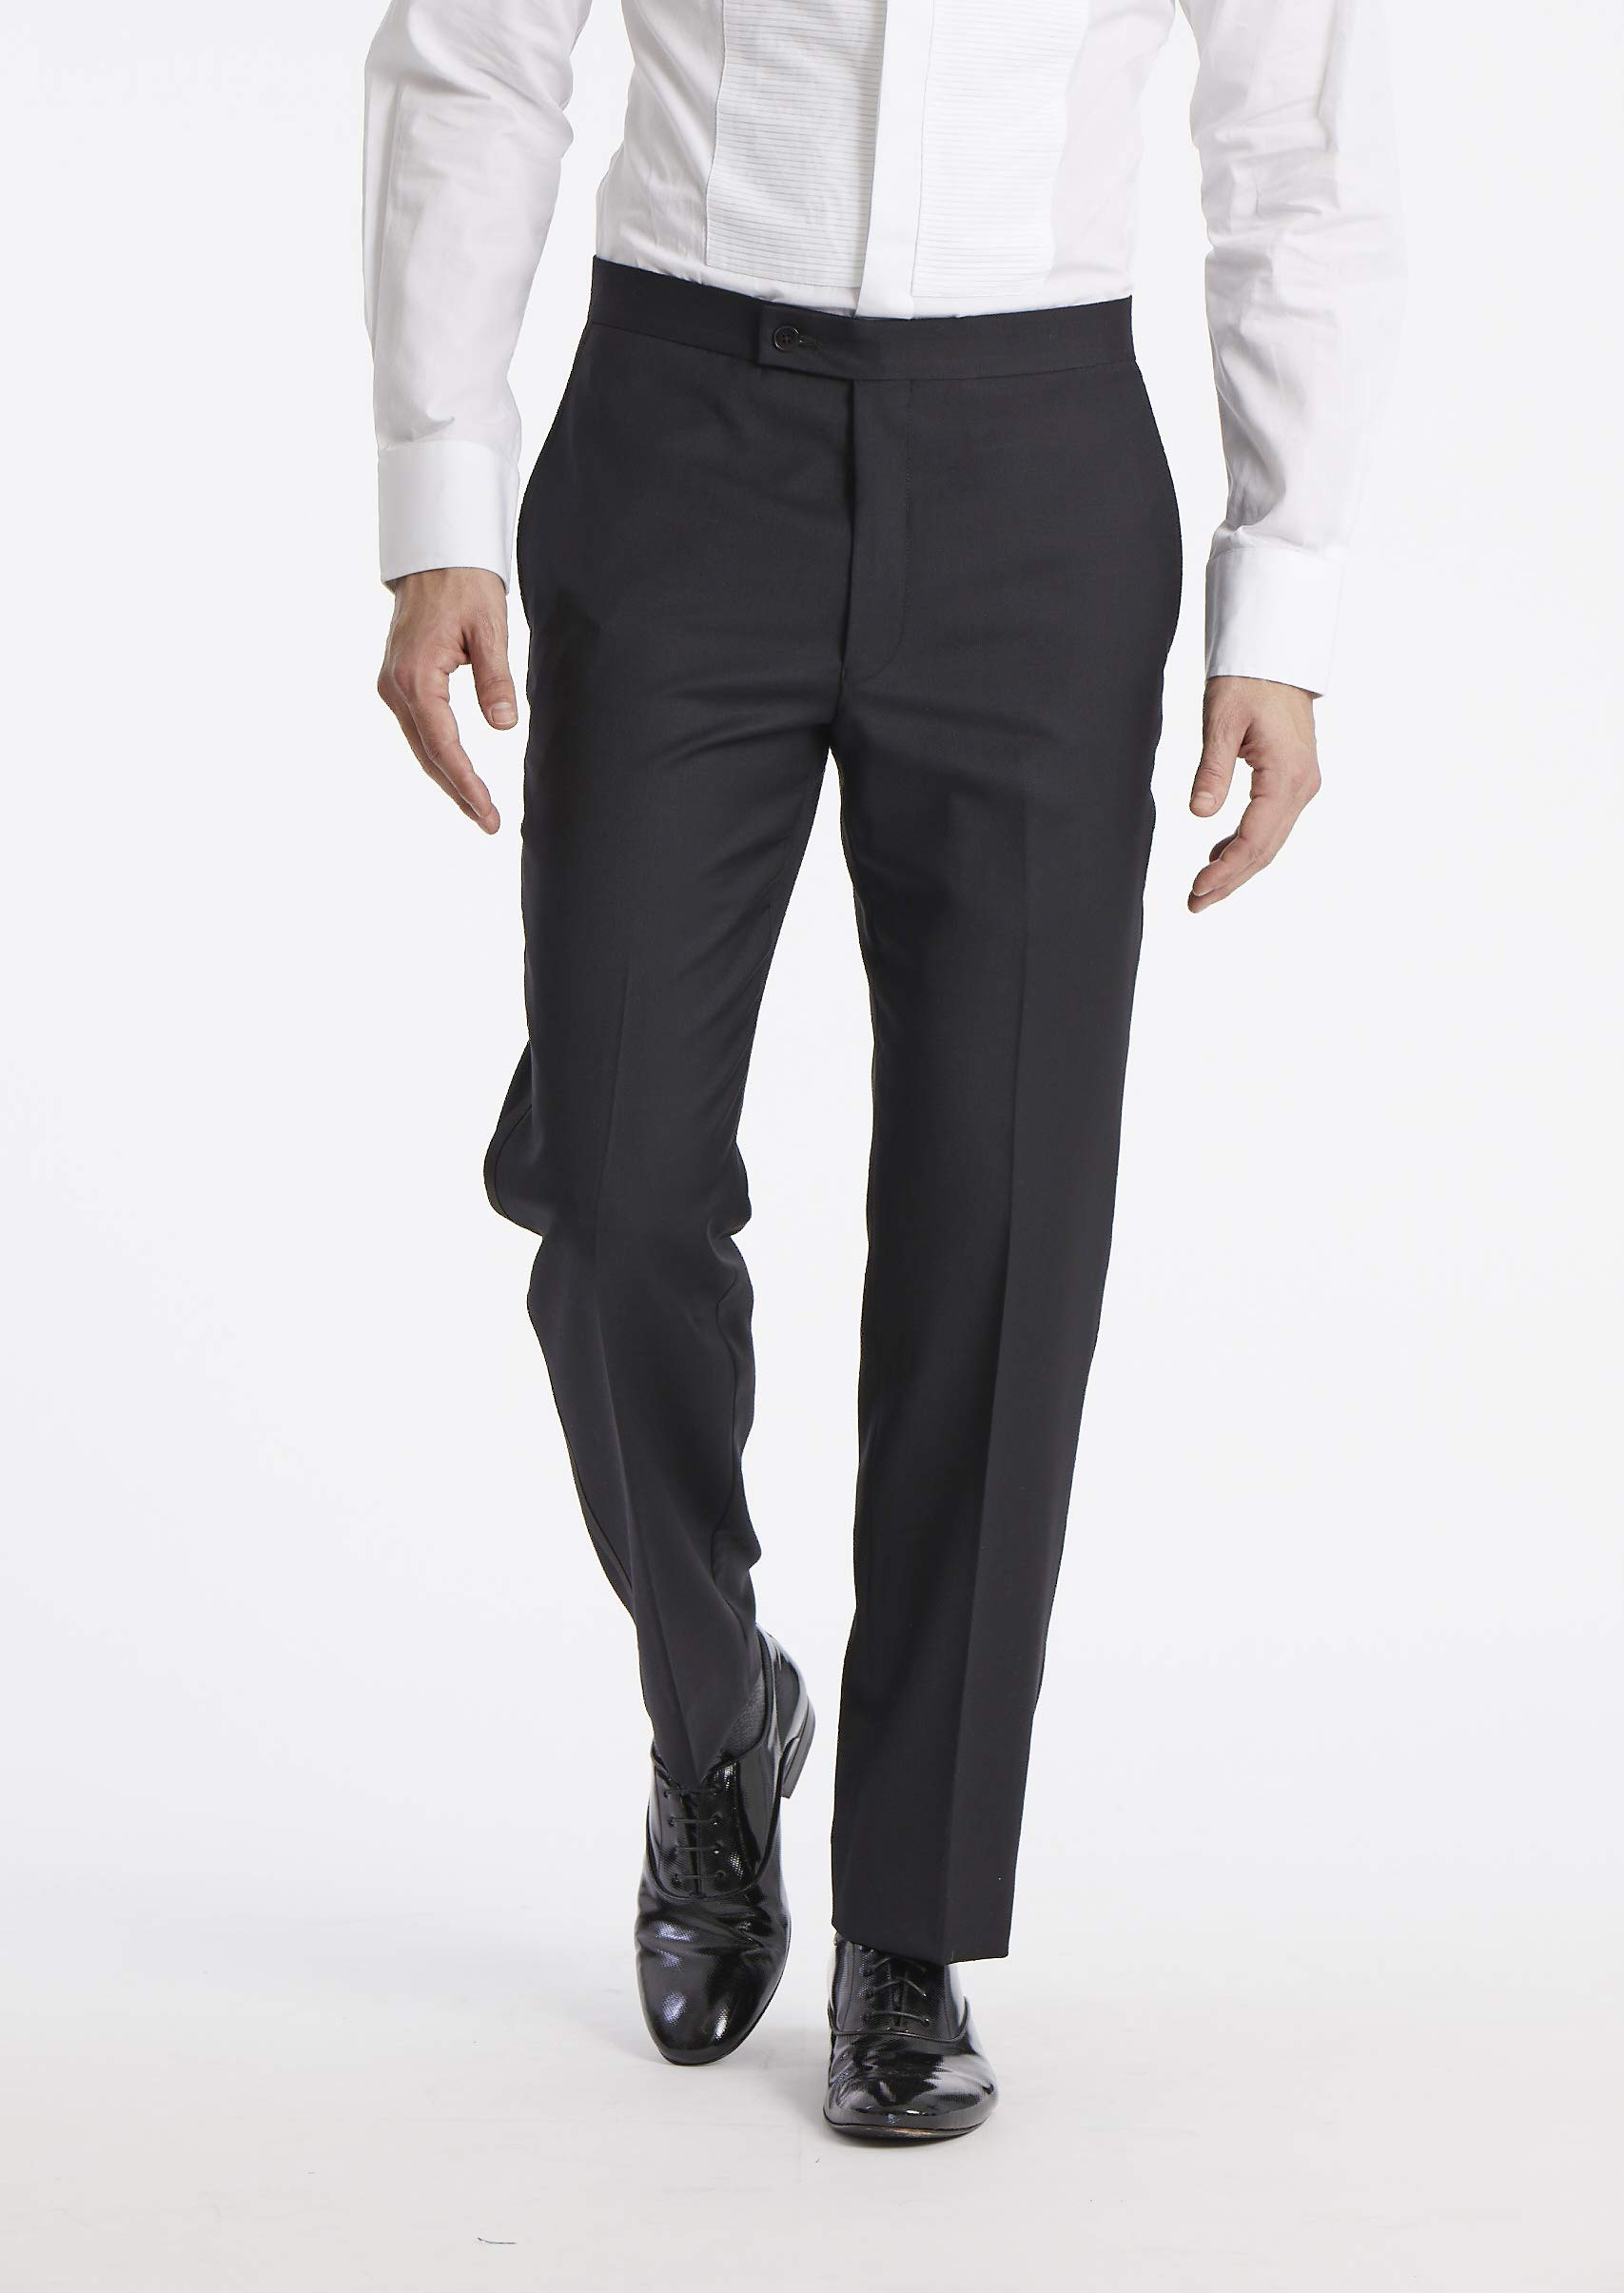 Calvin Klein Men's Modern Fit 100% Wool Tuxedo Suit Separates-Custom Blazer & Pant Size Selection, Black Pant, 34W x 32L